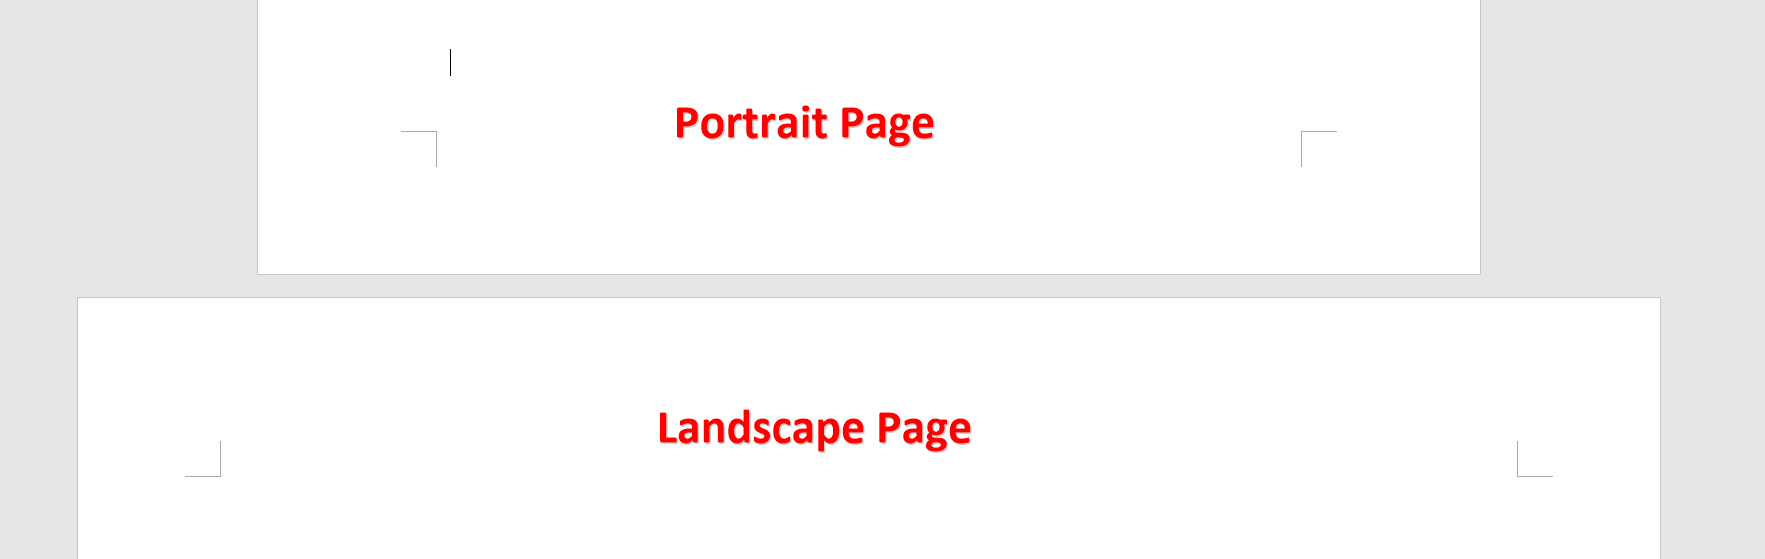 Page Layout Changed